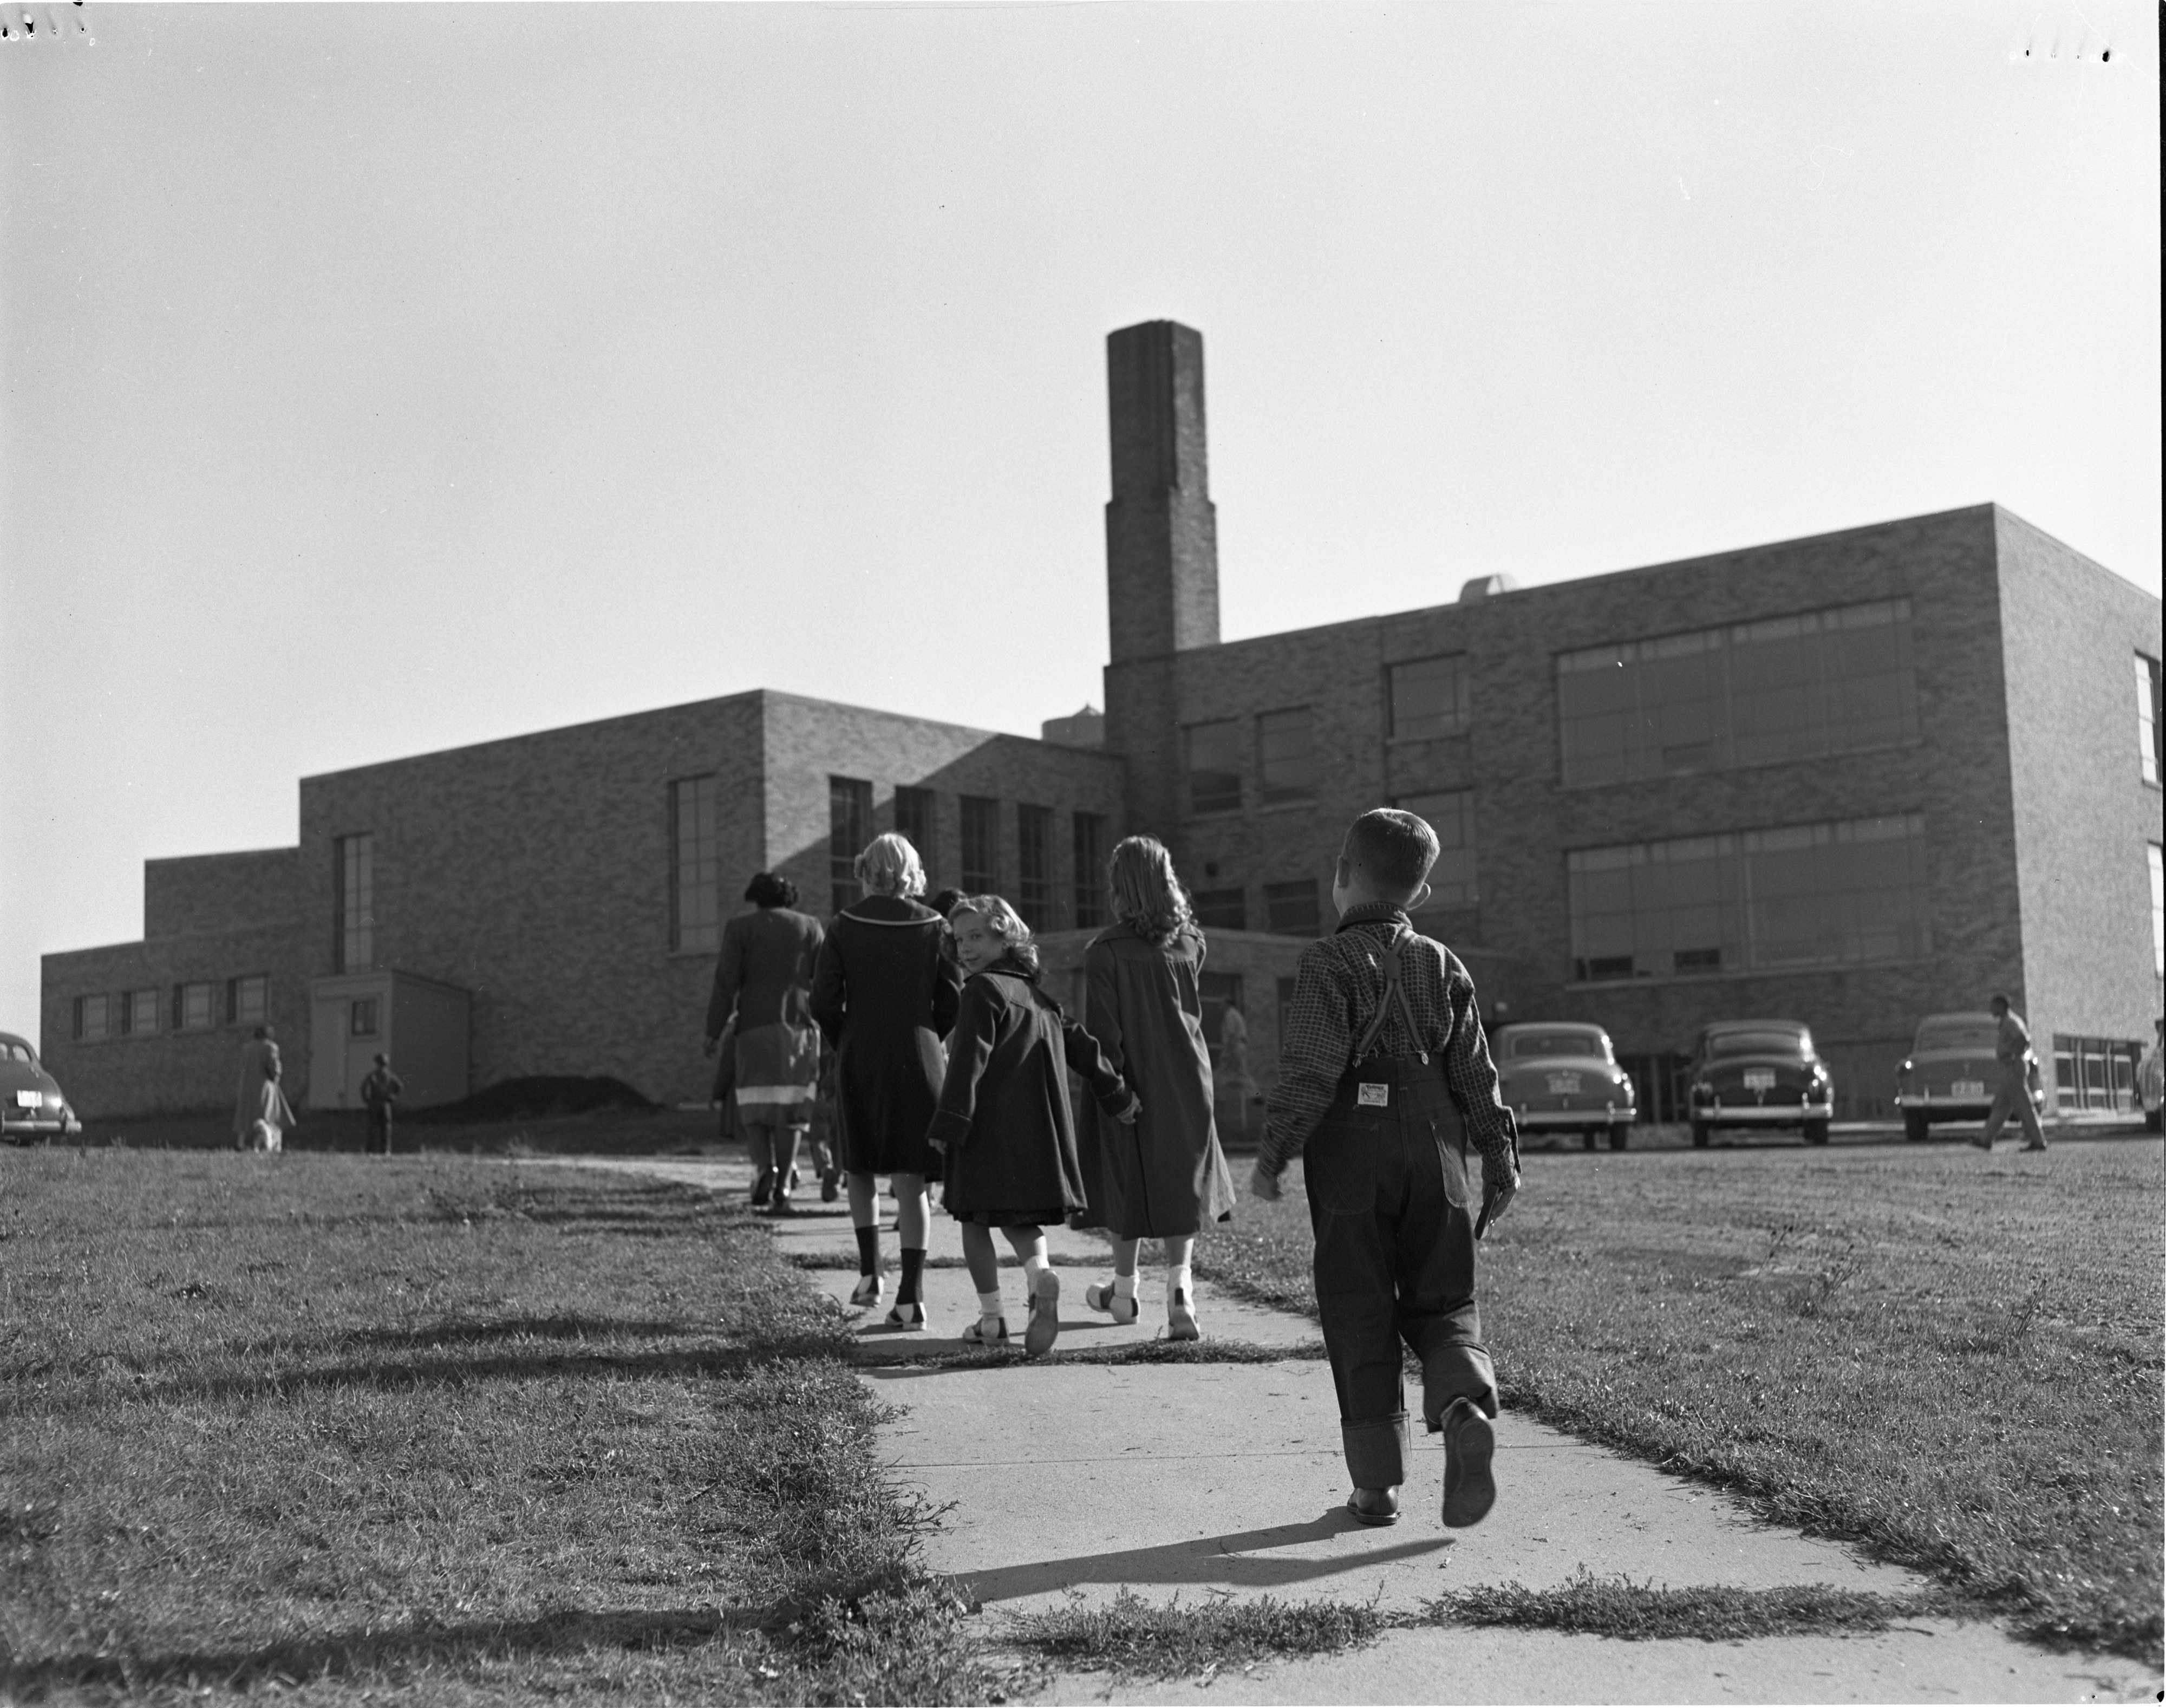 Students Arrive For First Day Of School Year At Northside School, September 1952 image